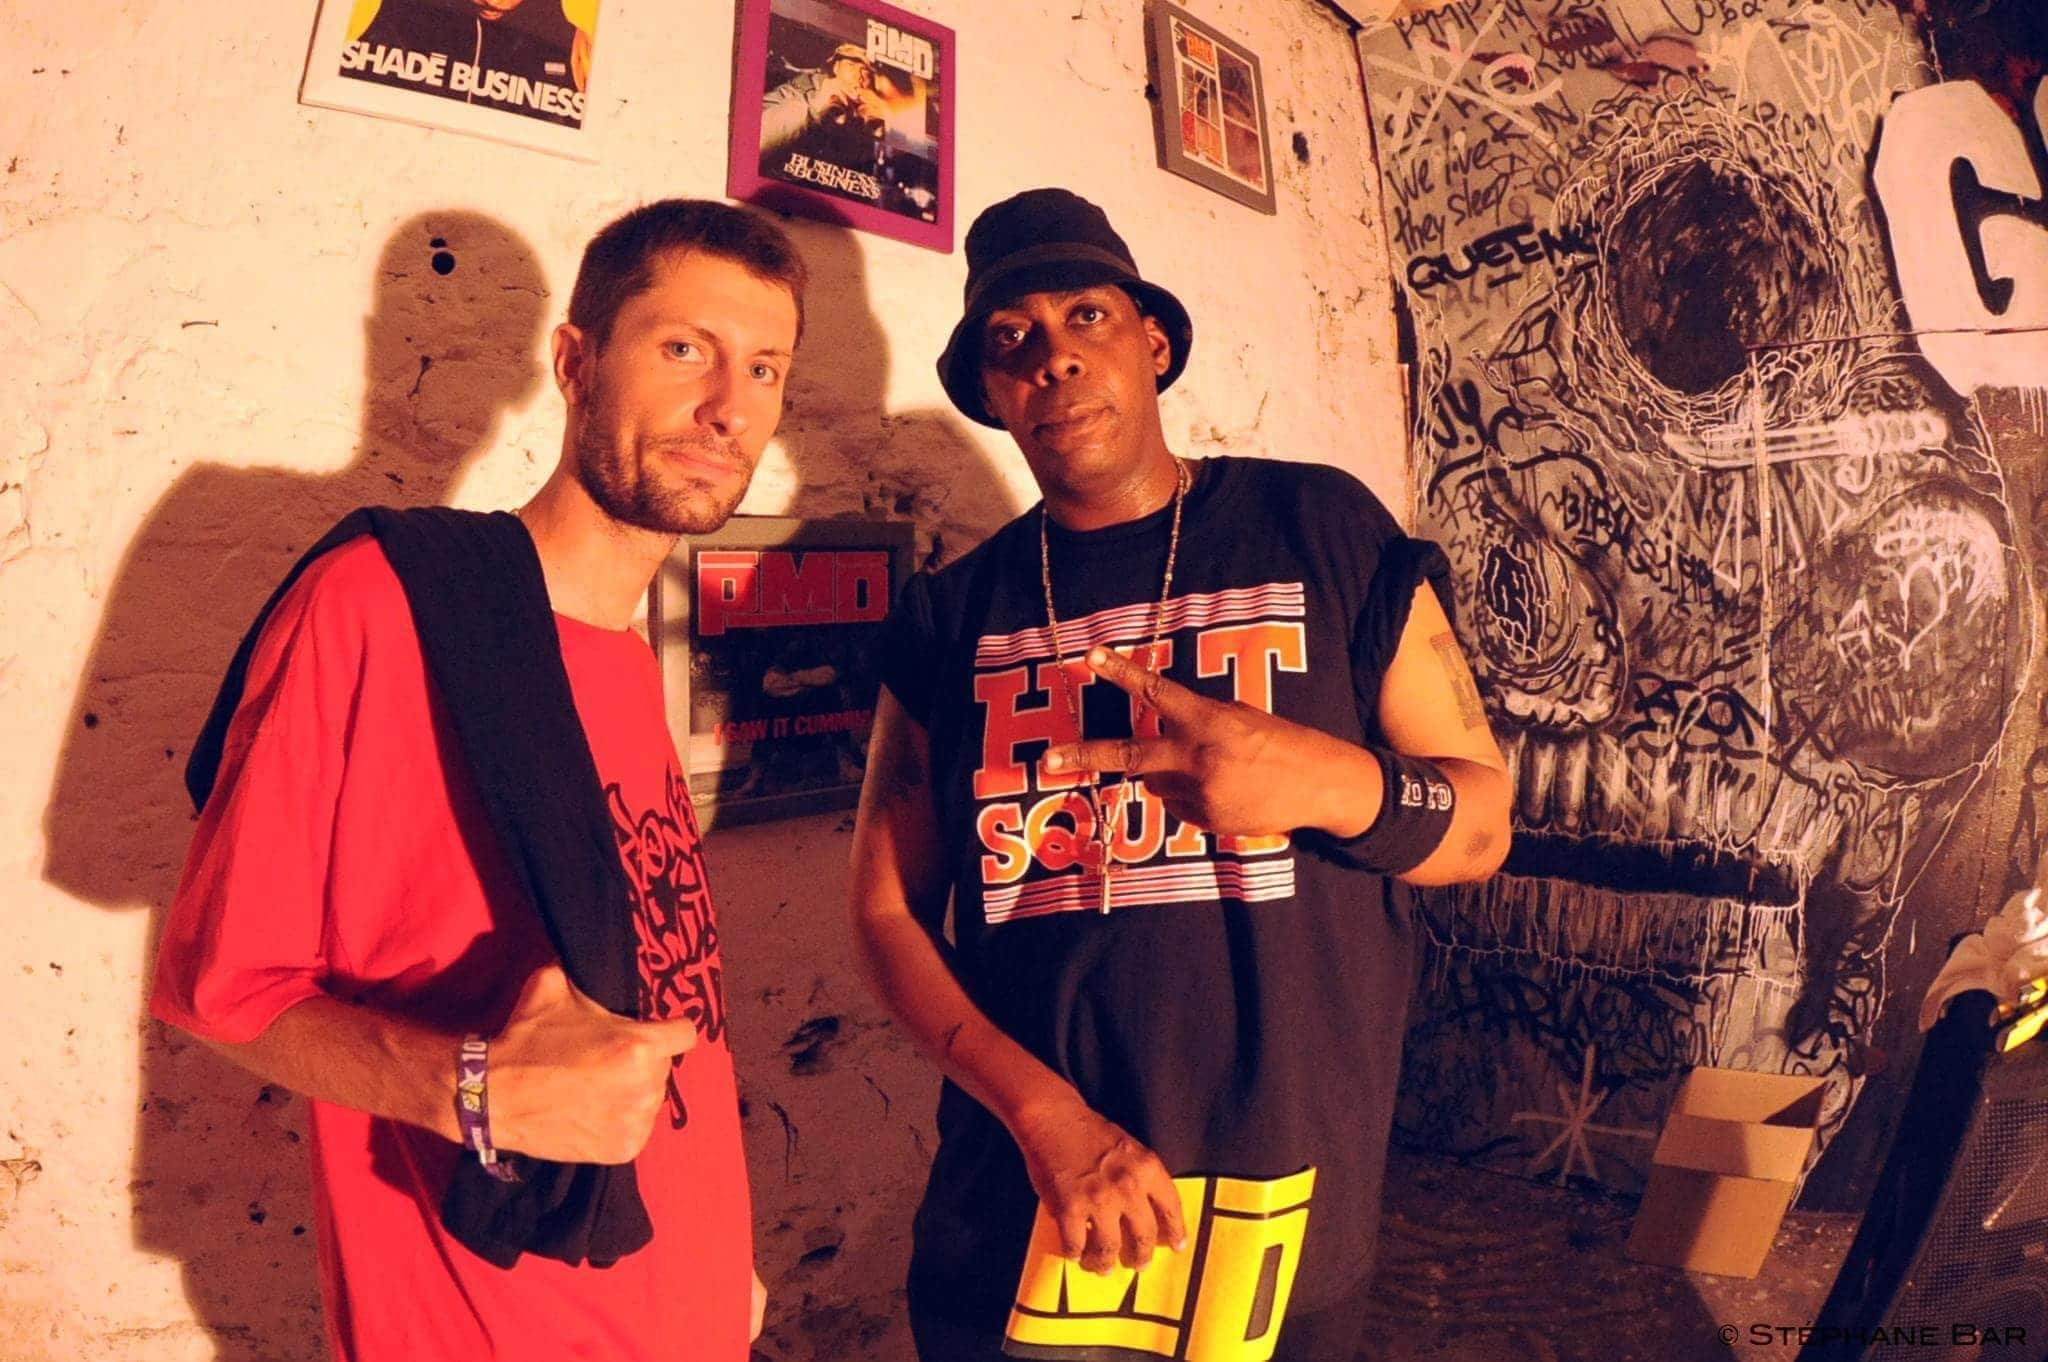 Nick UDGS avec Parish Smith (EPMD) - Photo Stéphane Bar